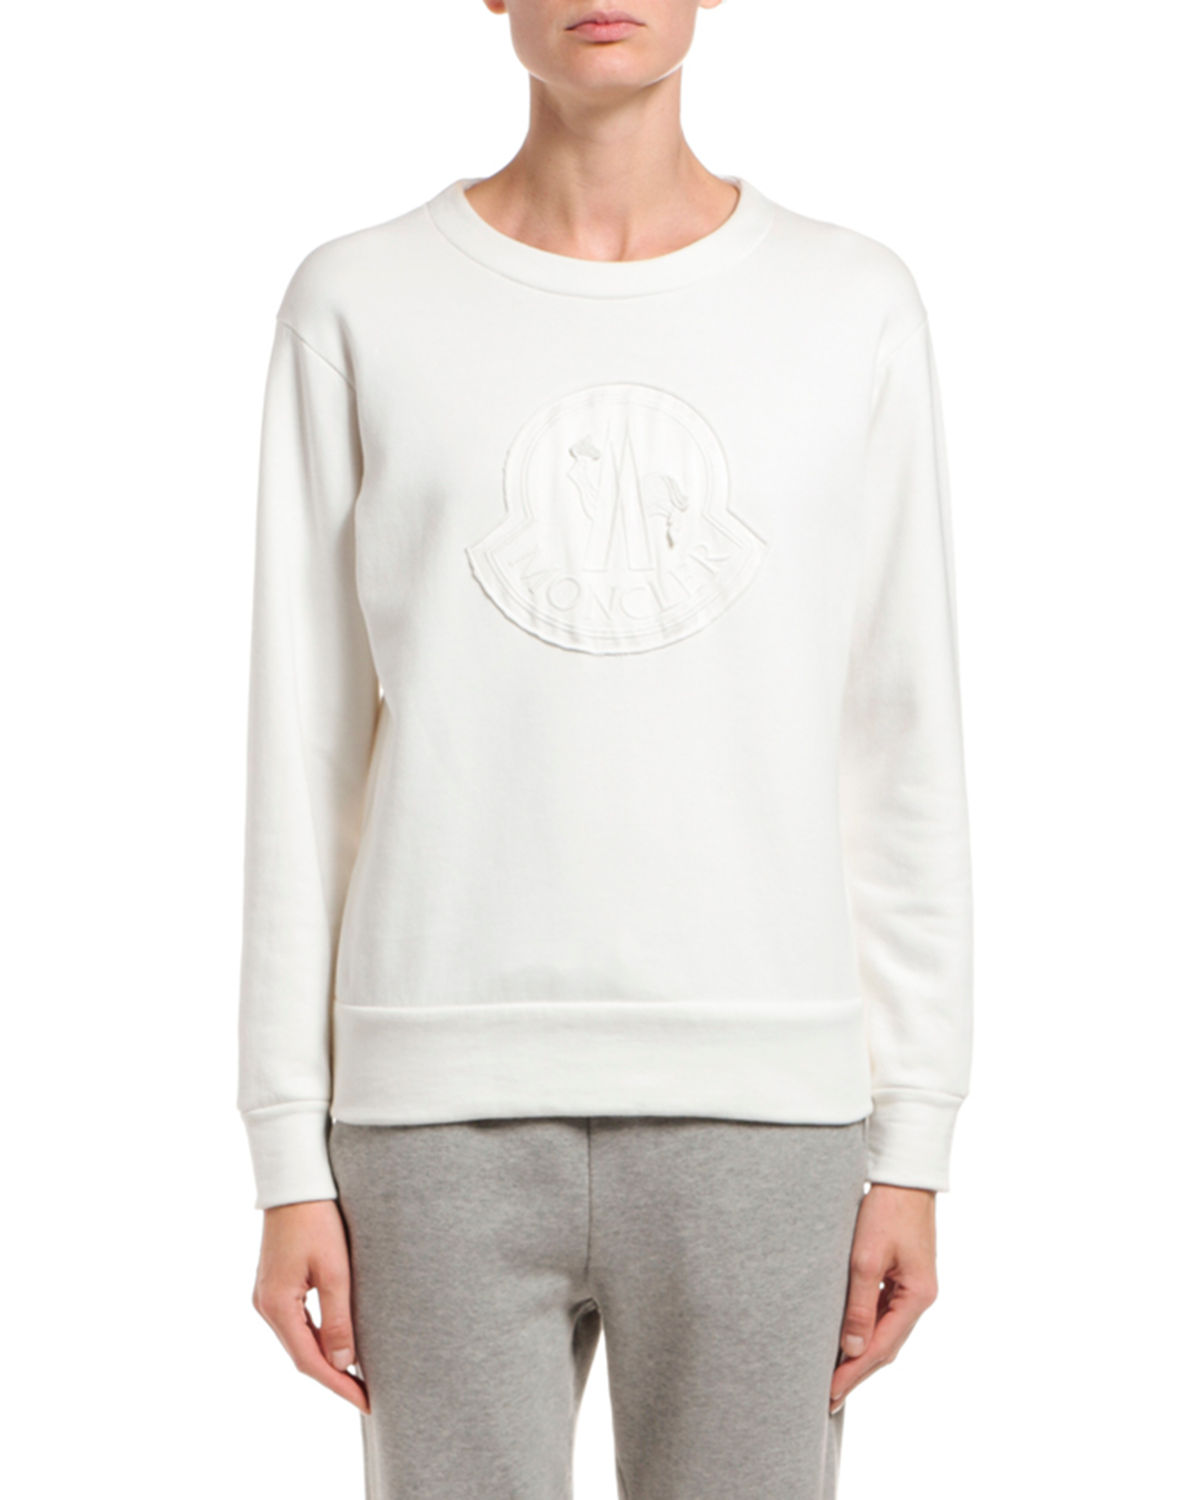 Moncler Logo Embroidered Crewneck Sweatshirt